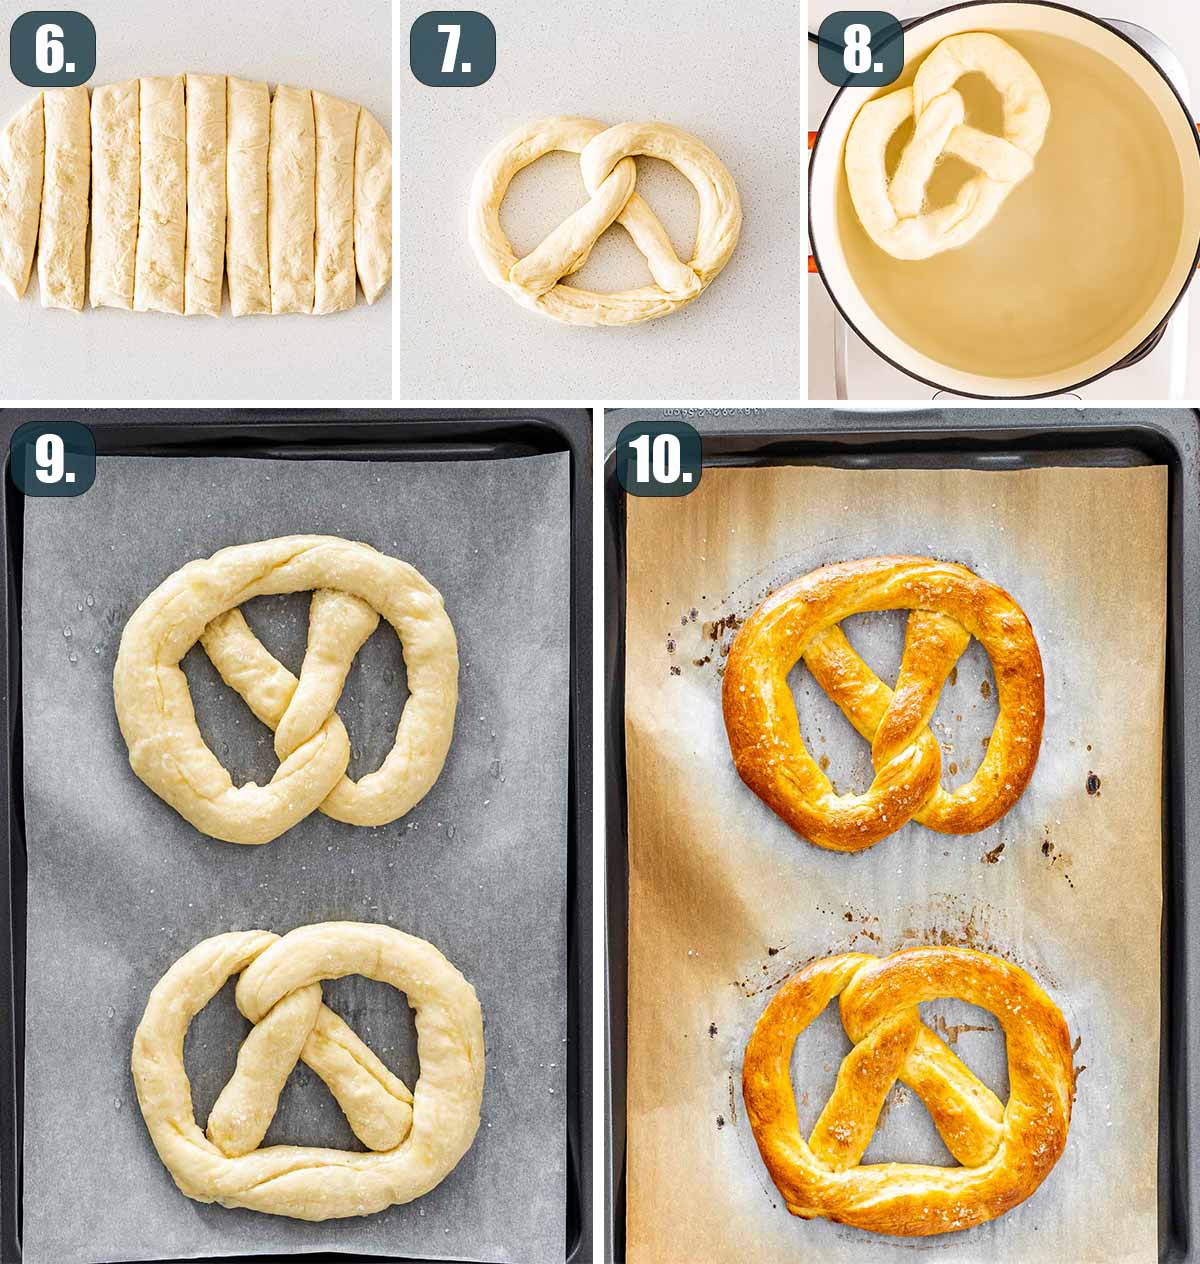 process shots showing how to shape the dough into pretzel form and bake it.